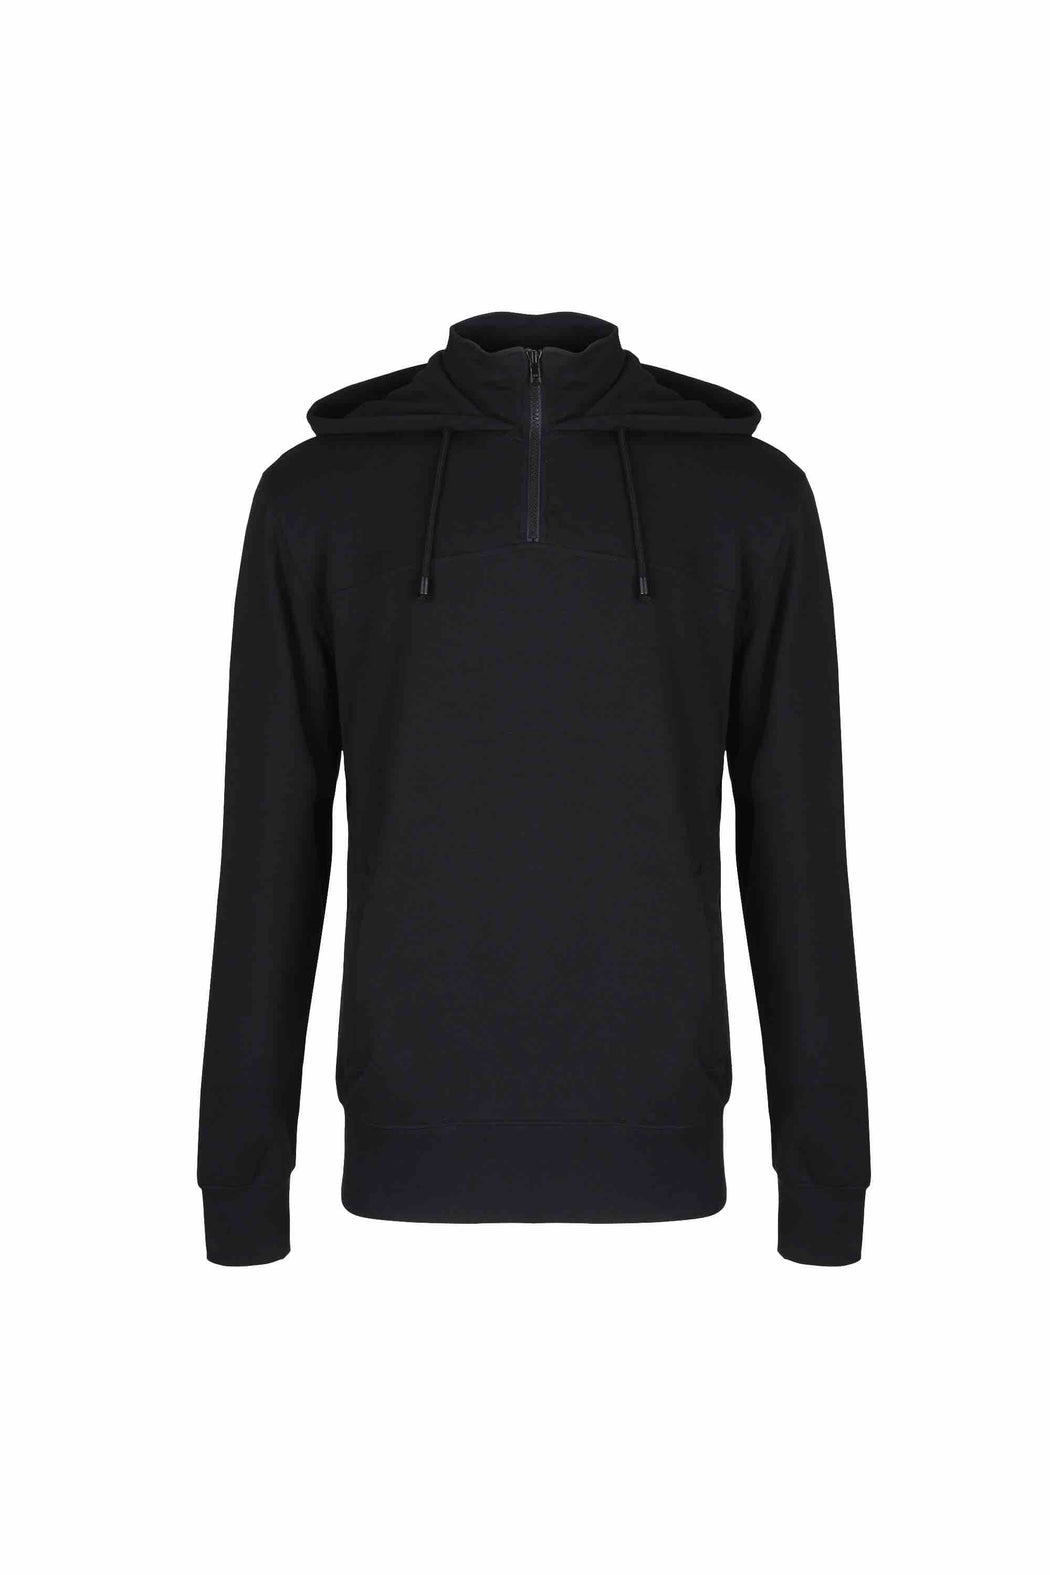 Front view of Men Pullover Hoodie Turtleneck, made with organic cotton in Black